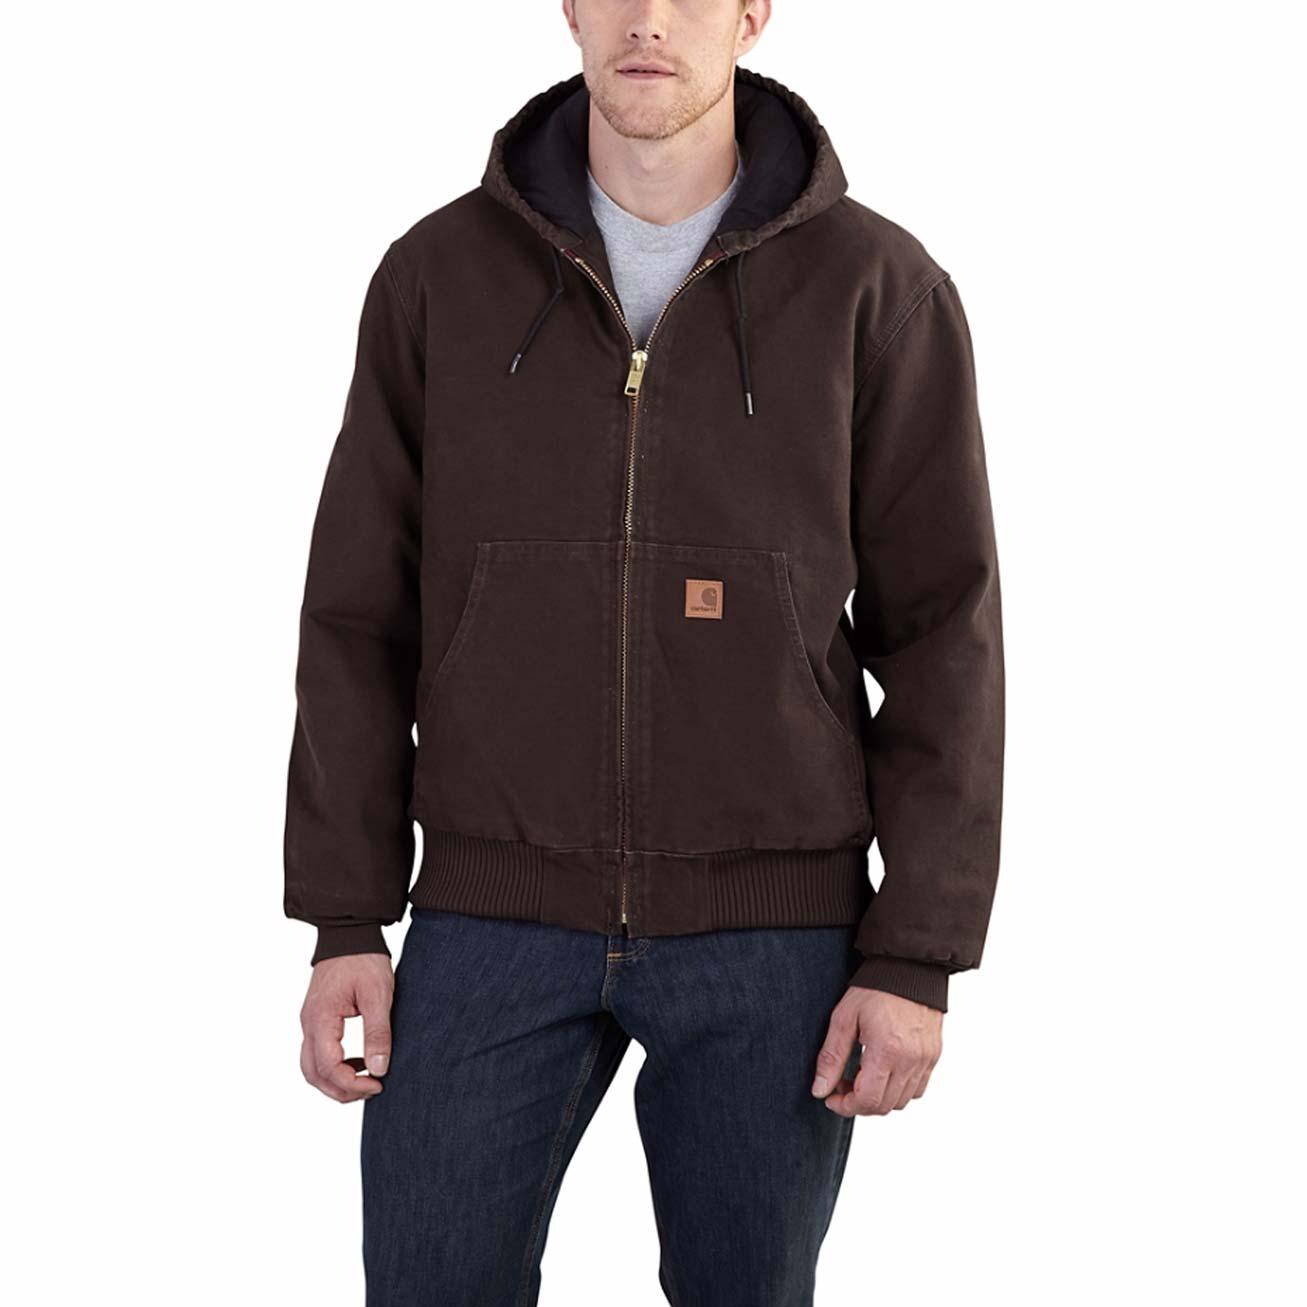 Carhartt Quilted Flannel-Lined Active Jacket, #J130DKB : carhartt quilted jacket - Adamdwight.com